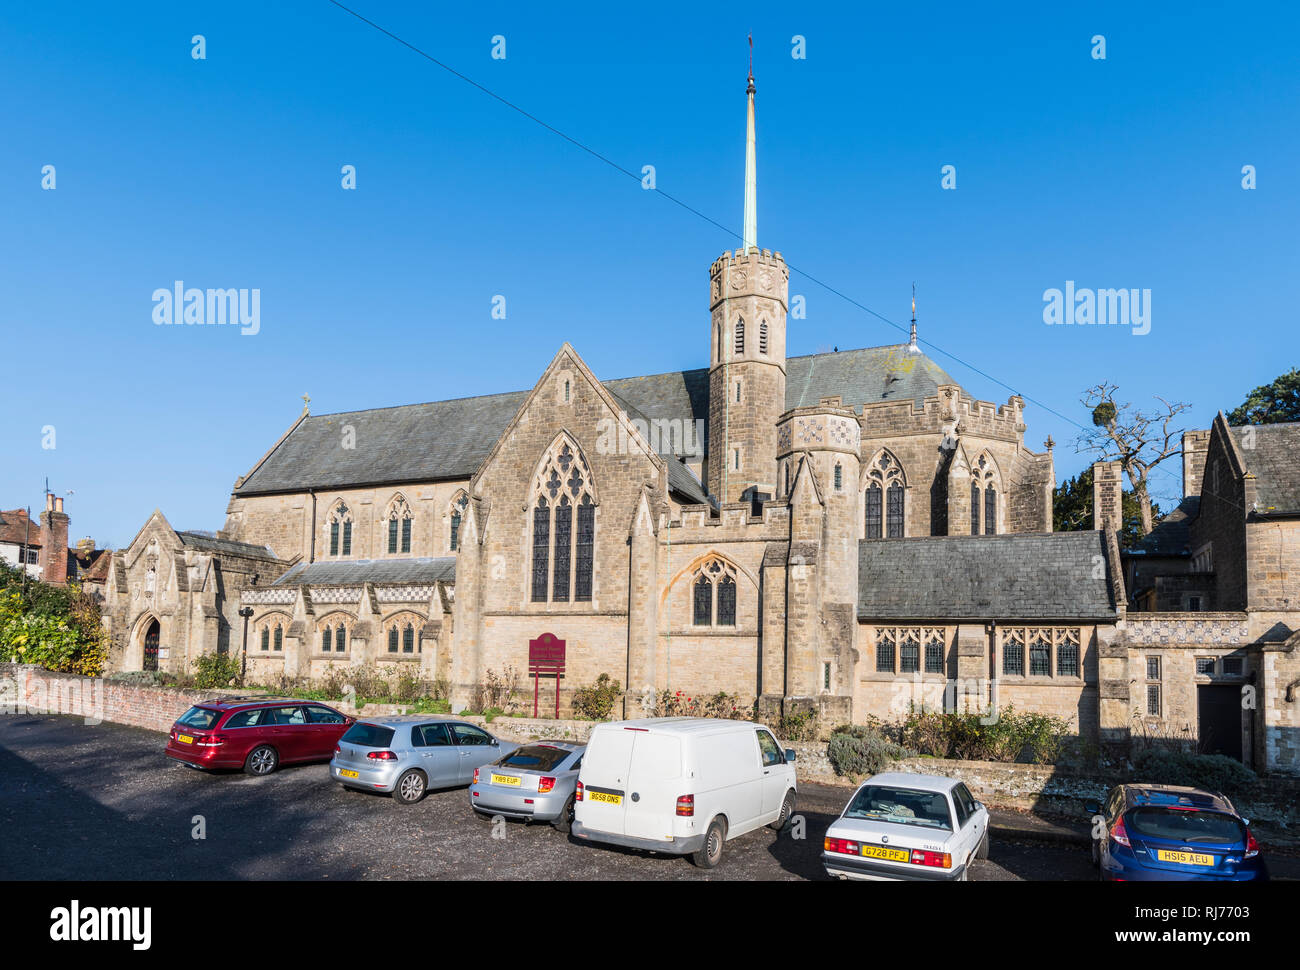 The Sacred Heart Church, a Roman Catholic Parish Church in Petworth, West Sussex, England, UK. - Stock Image